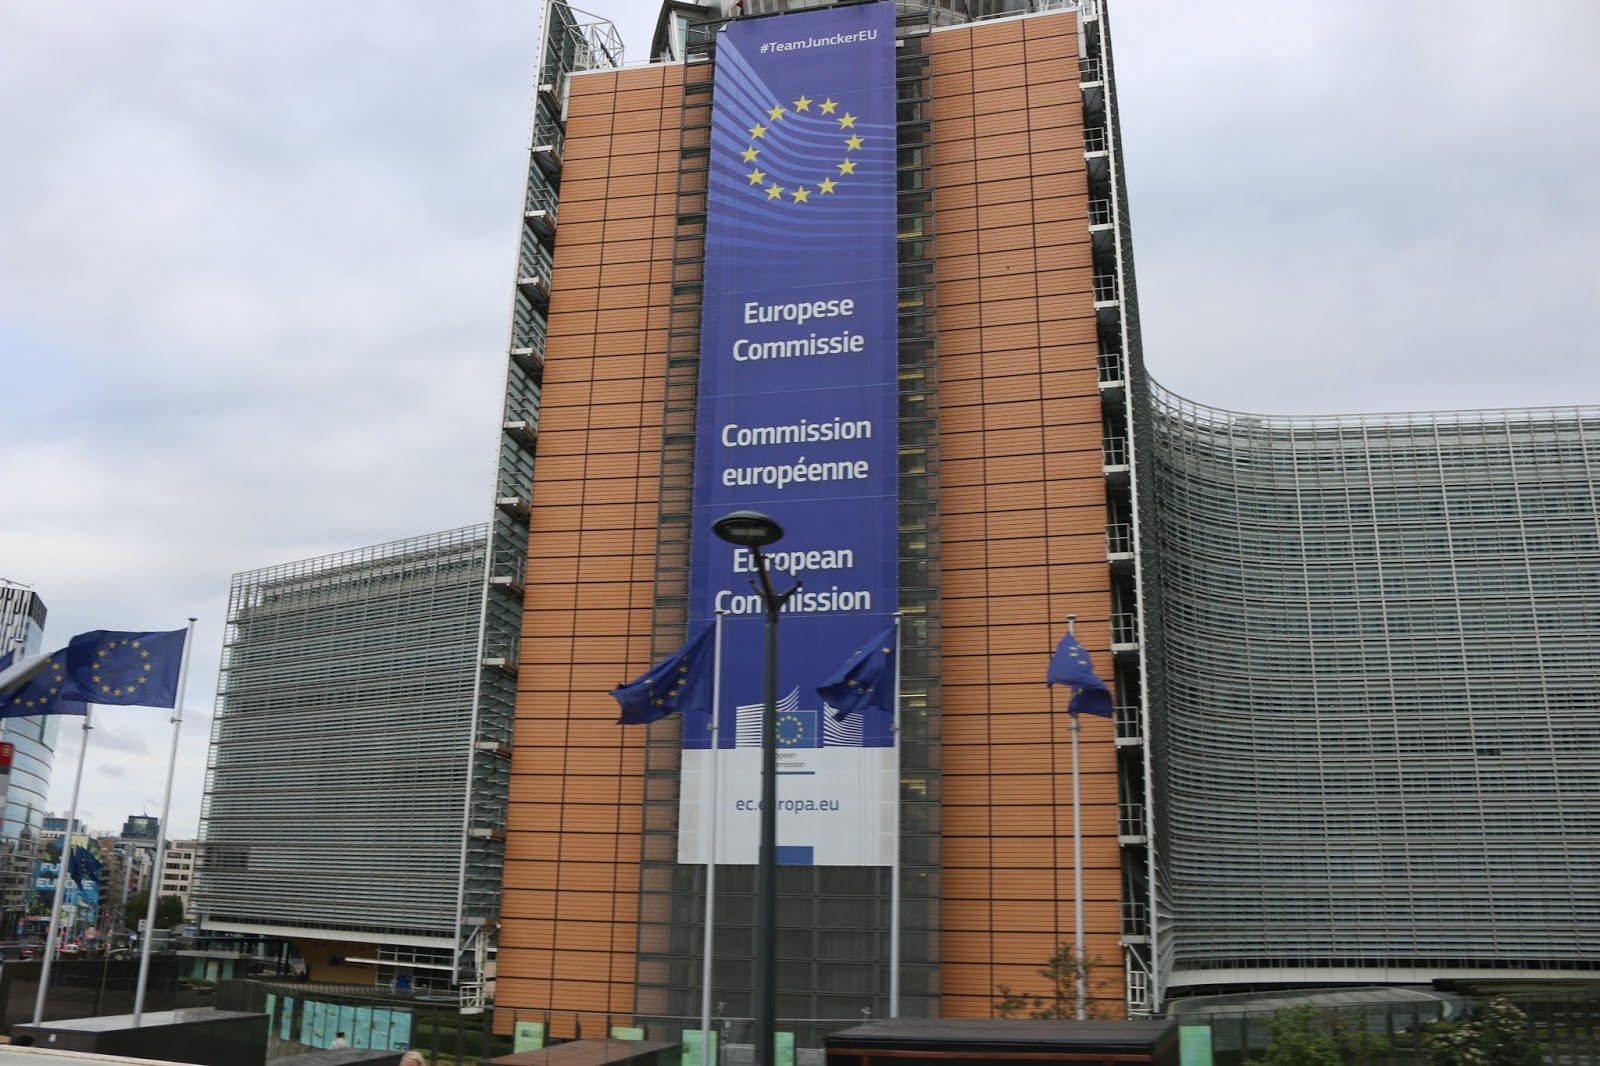 Brussels European Commission